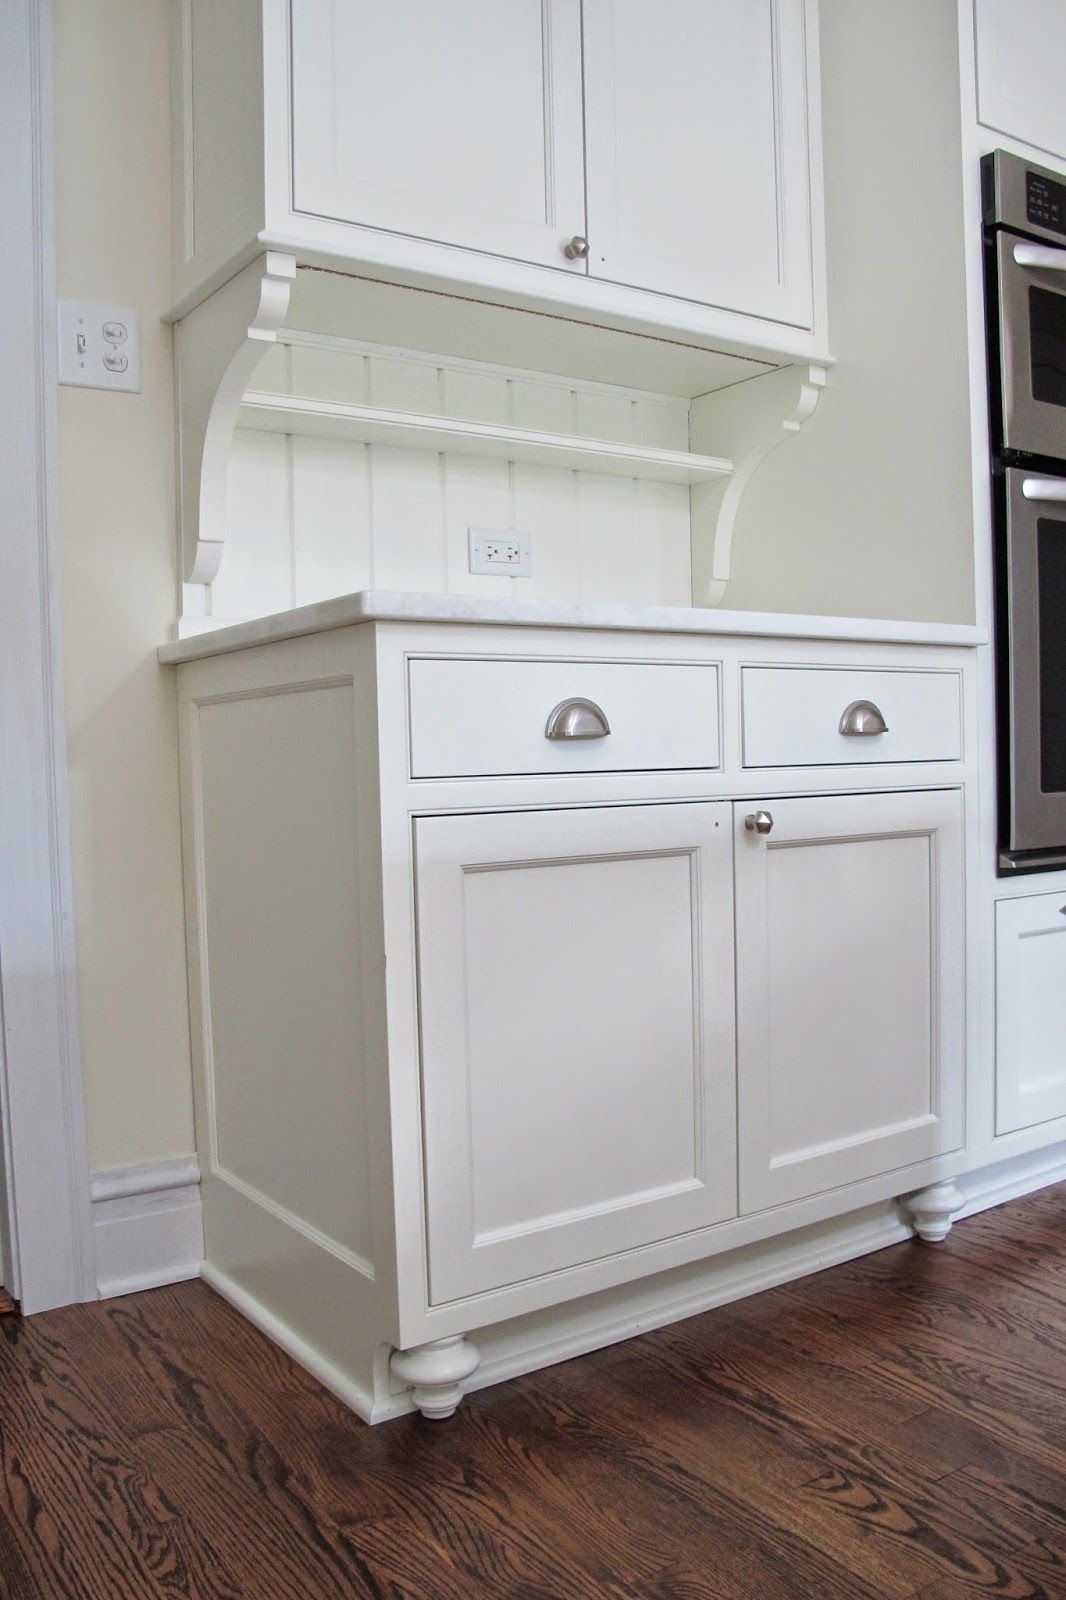 I Love The Little Feet That Make The Cabinet Look Like Furniture Dream Kitchen Pinterest